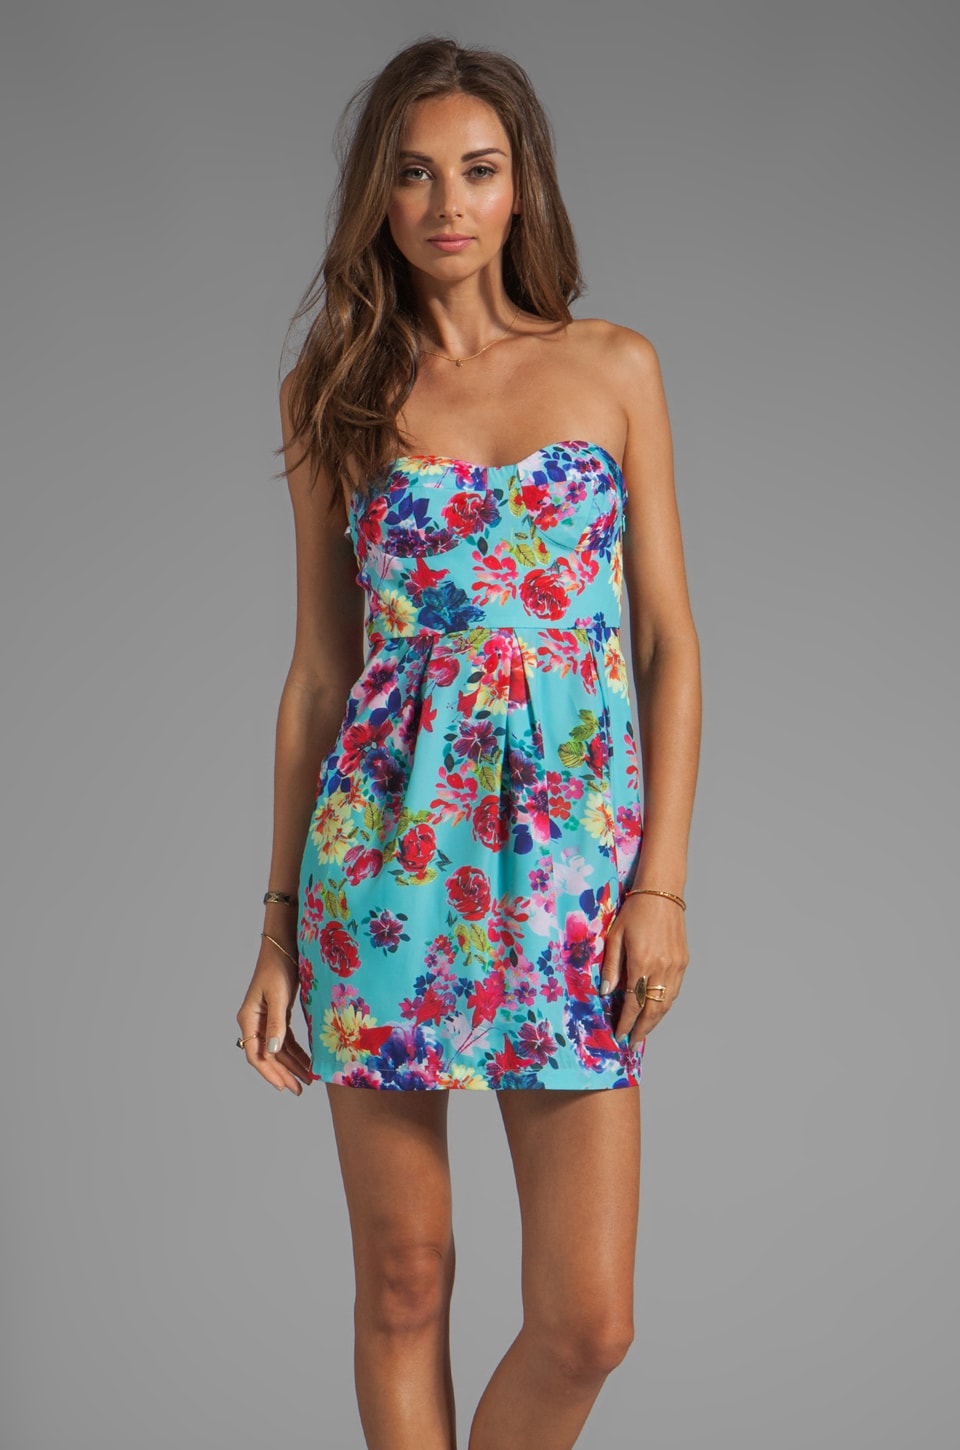 Ladakh Full Bloom Dress in Multi